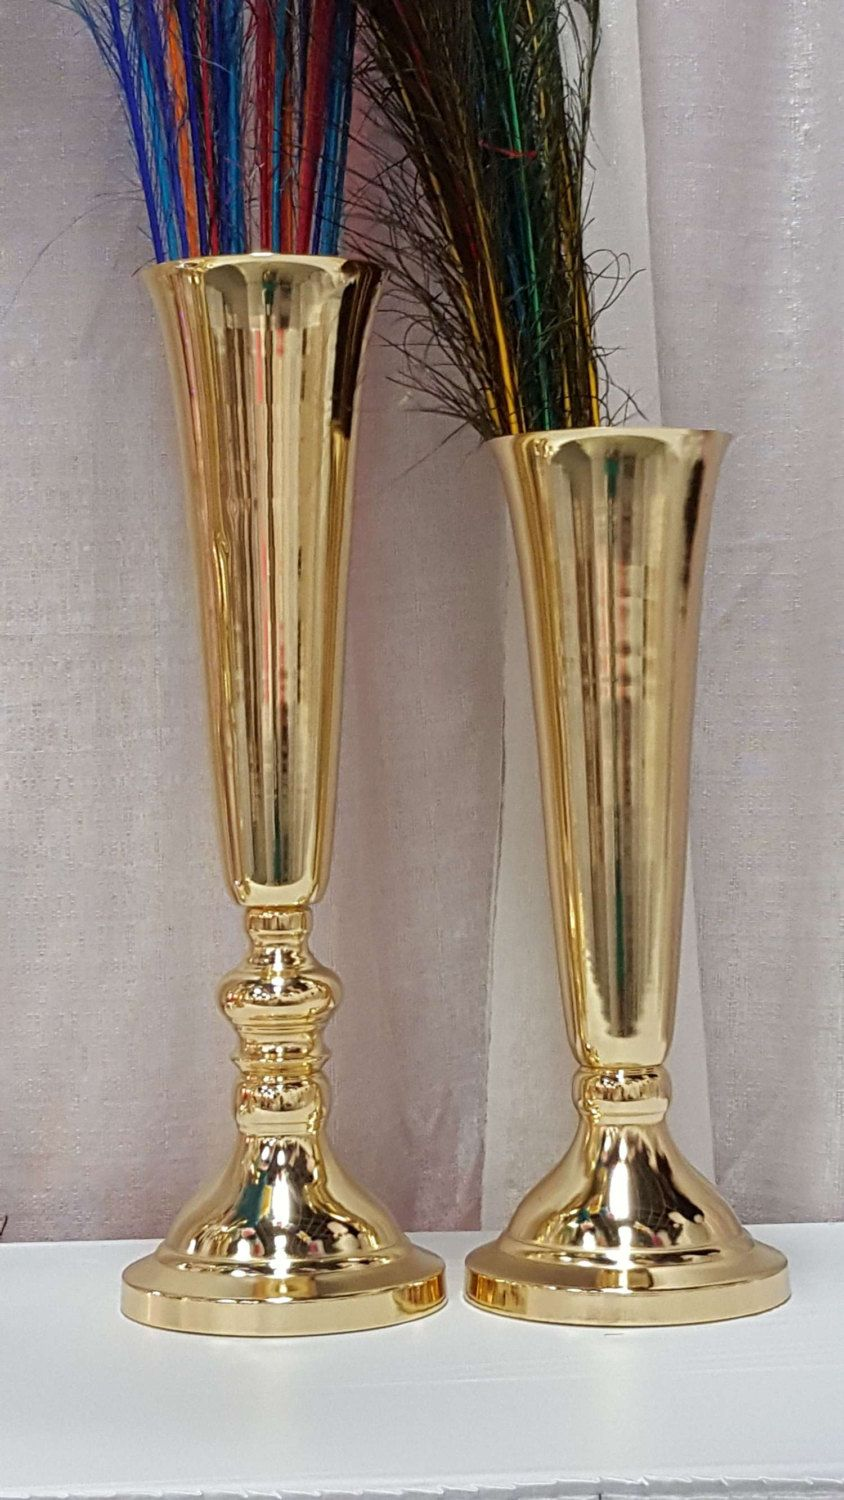 Gold polished tall metallic trumpet vases wedding centerpieces gold polished tall metallic trumpet vases wedding centerpieces vases french gold 20 inches 24 inches reviewsmspy